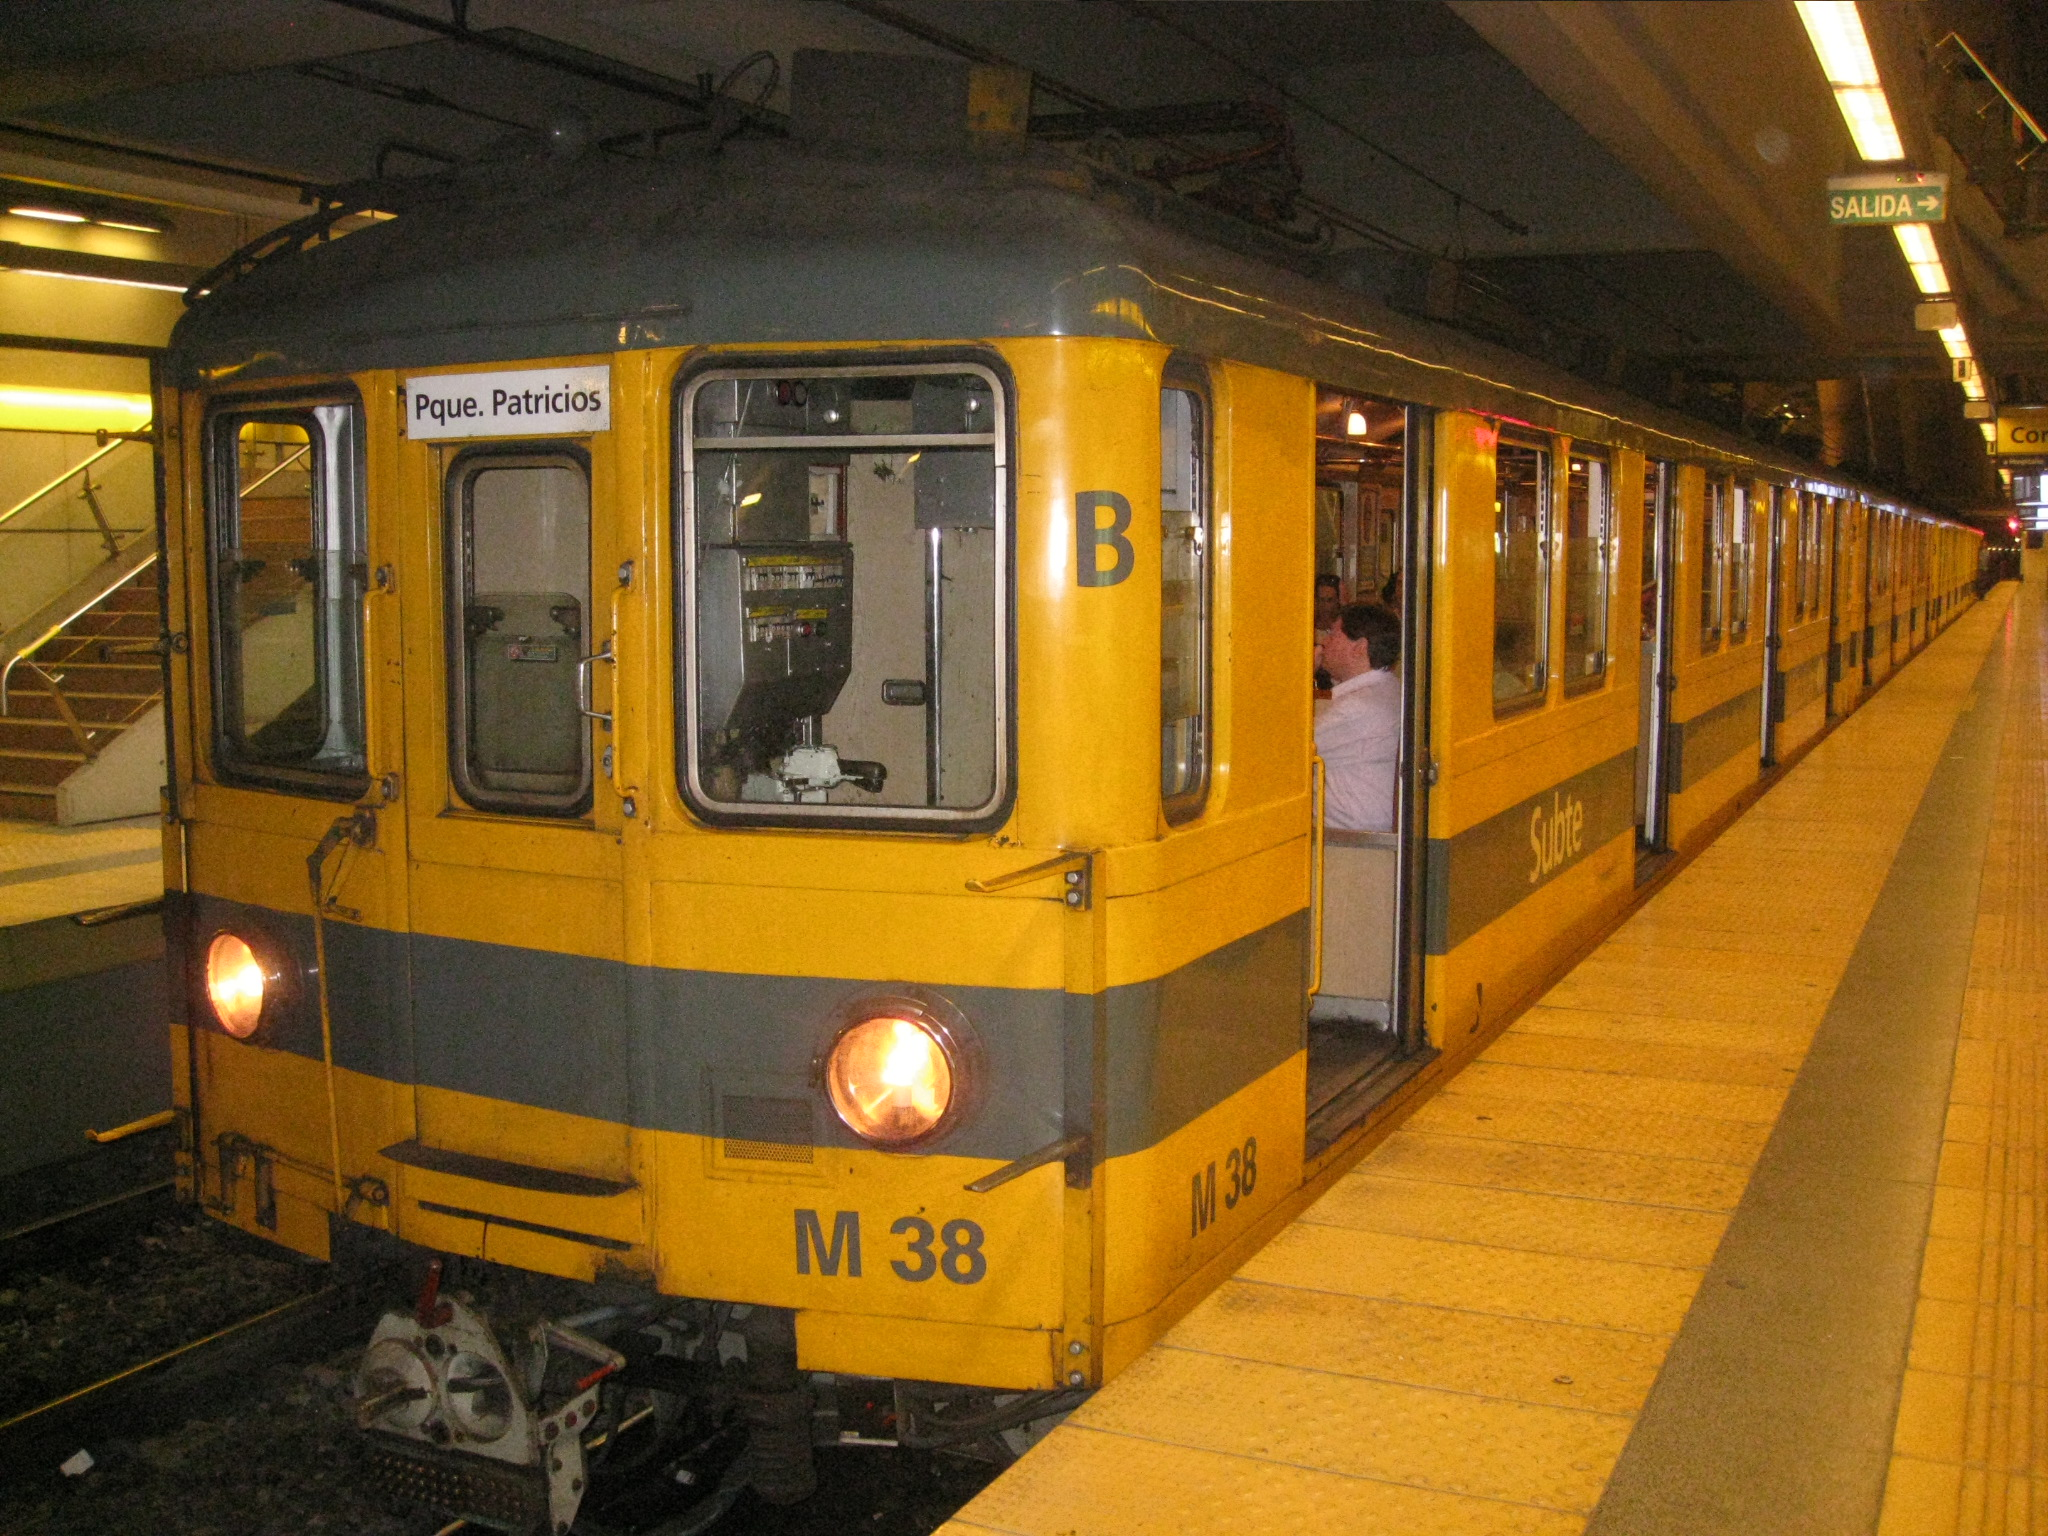 File:Buenos Aires Subte H.JPG - Wikimedia Commons